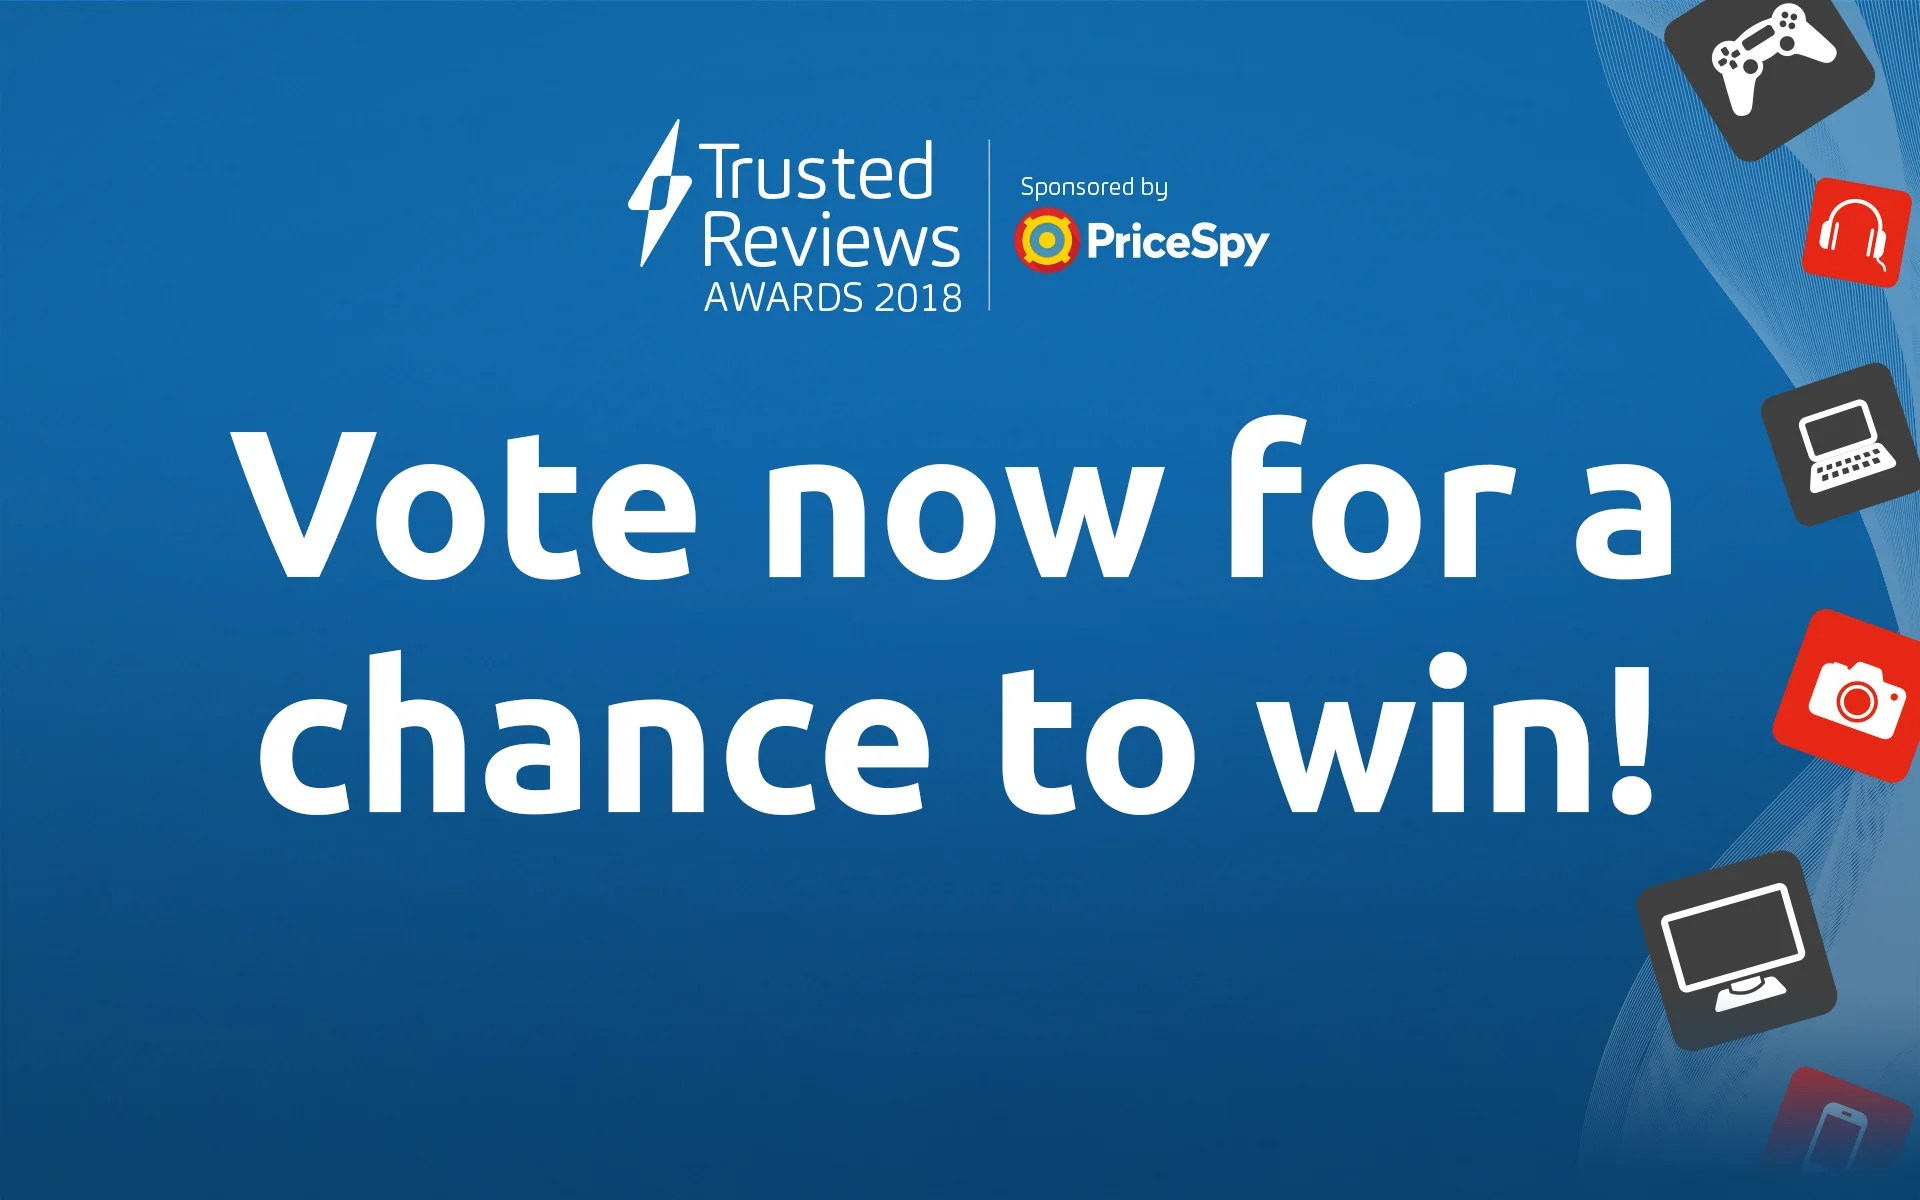 Amelies Wohnzimmer Win A Free Iphone Xs Vote Now In The Trusted Reviews Awards 2018